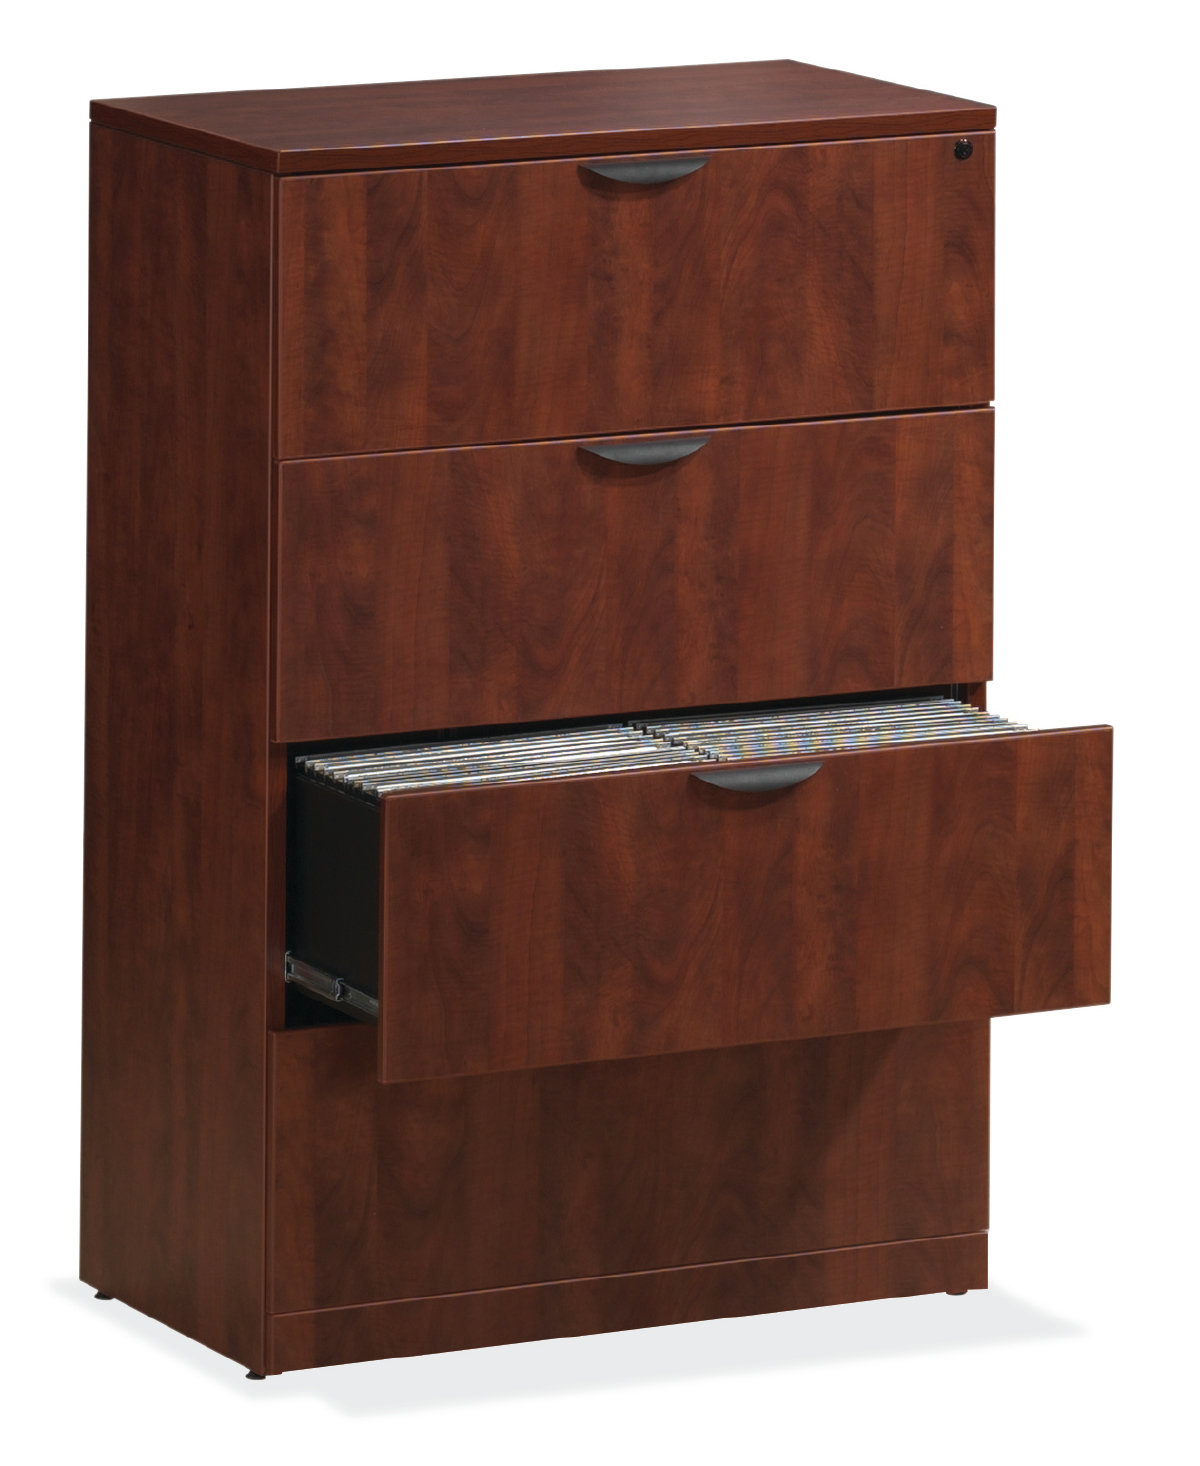 4 Drawer Lateral File Discount Office Furniture Inc